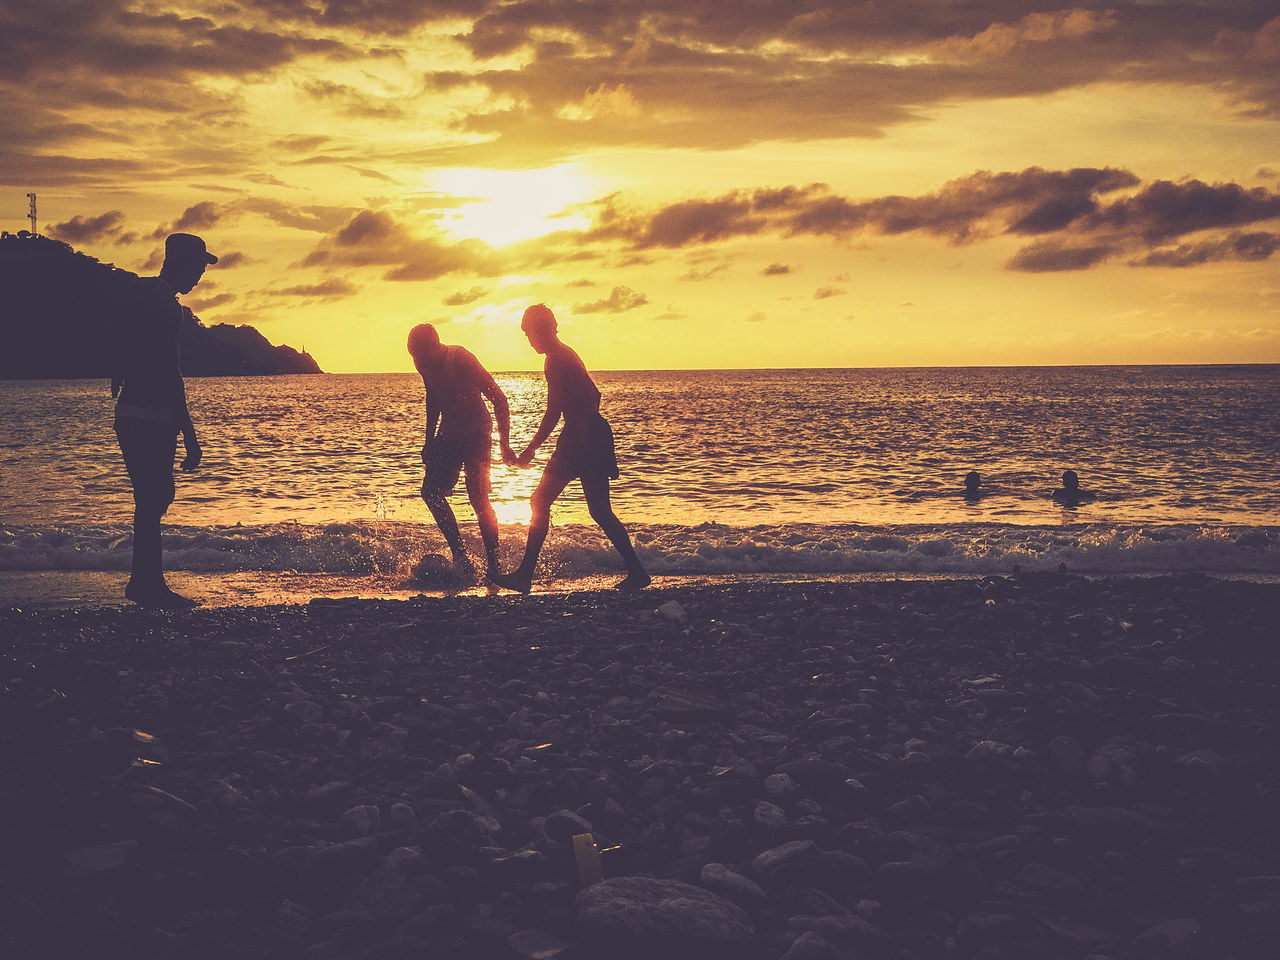 Young boys playing football on the beach during sunset Beach Boys Clouds Colombia Football Friendship Horizon Over Water Leisure Activity Men Playing Real People Sand Sea Shore Silhouette Southamerica Sunset Togetherness Vacations Water